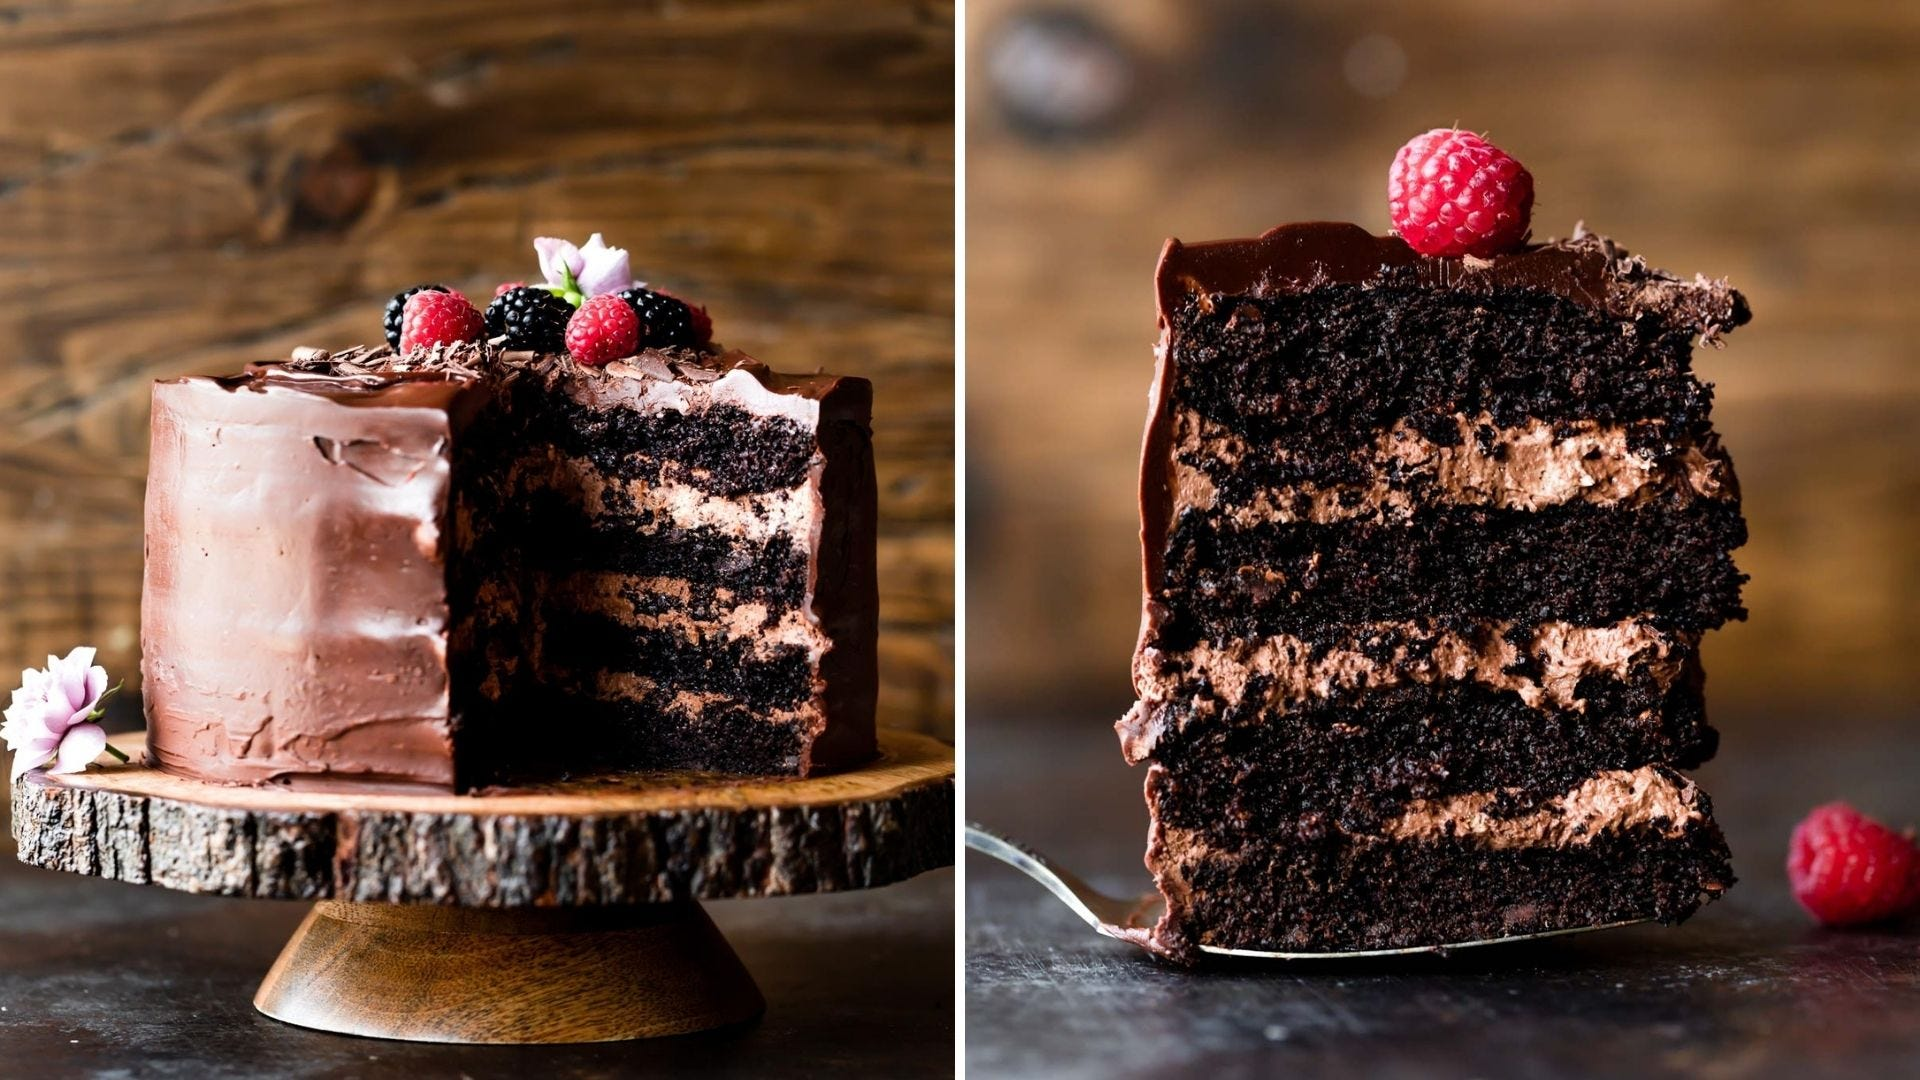 Chocolate cake with several layers of chocolate mousse in between each layer